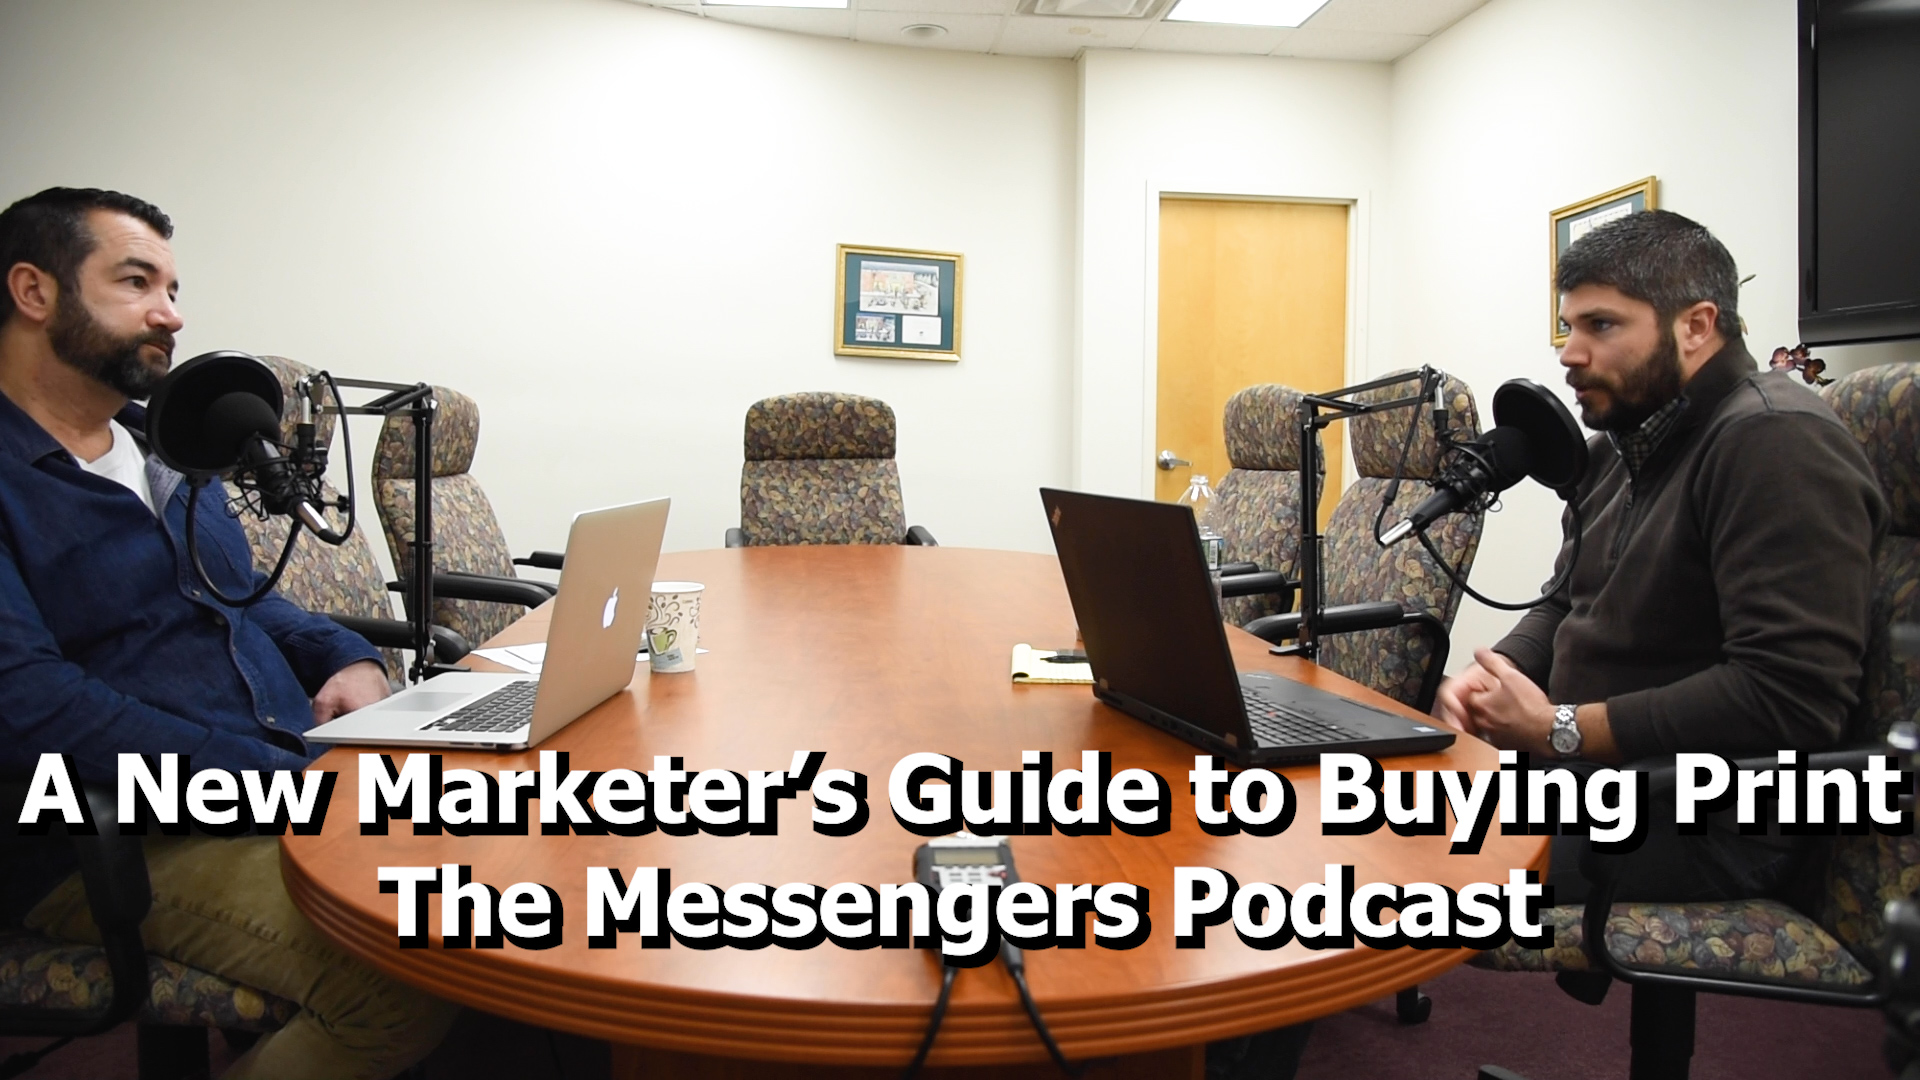 A New Marketer's Guide to Buying Print - The Messengers